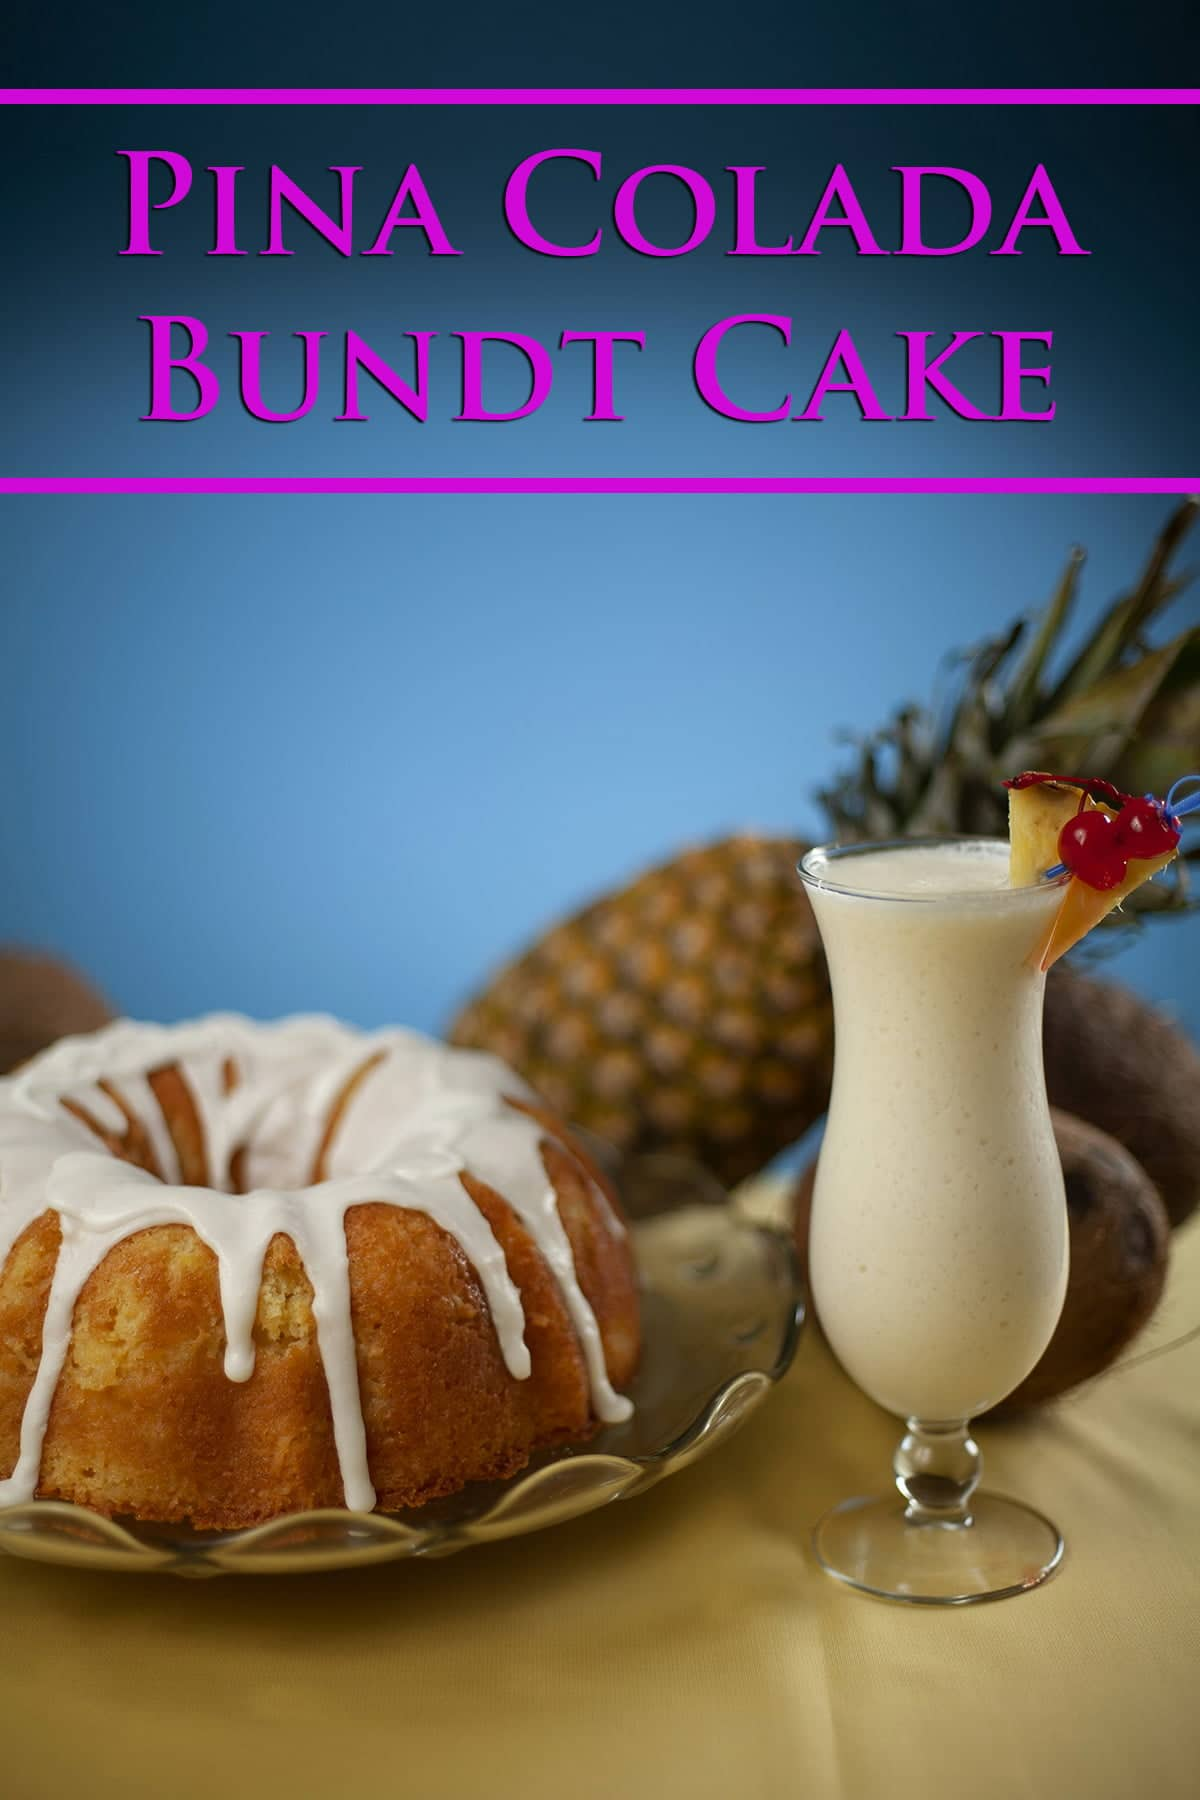 A pina colada bundt cake with white glaze dripping from the top is shown next to a tall tulip shaped glass of pina colada. A coconut and pineapple are in the background.